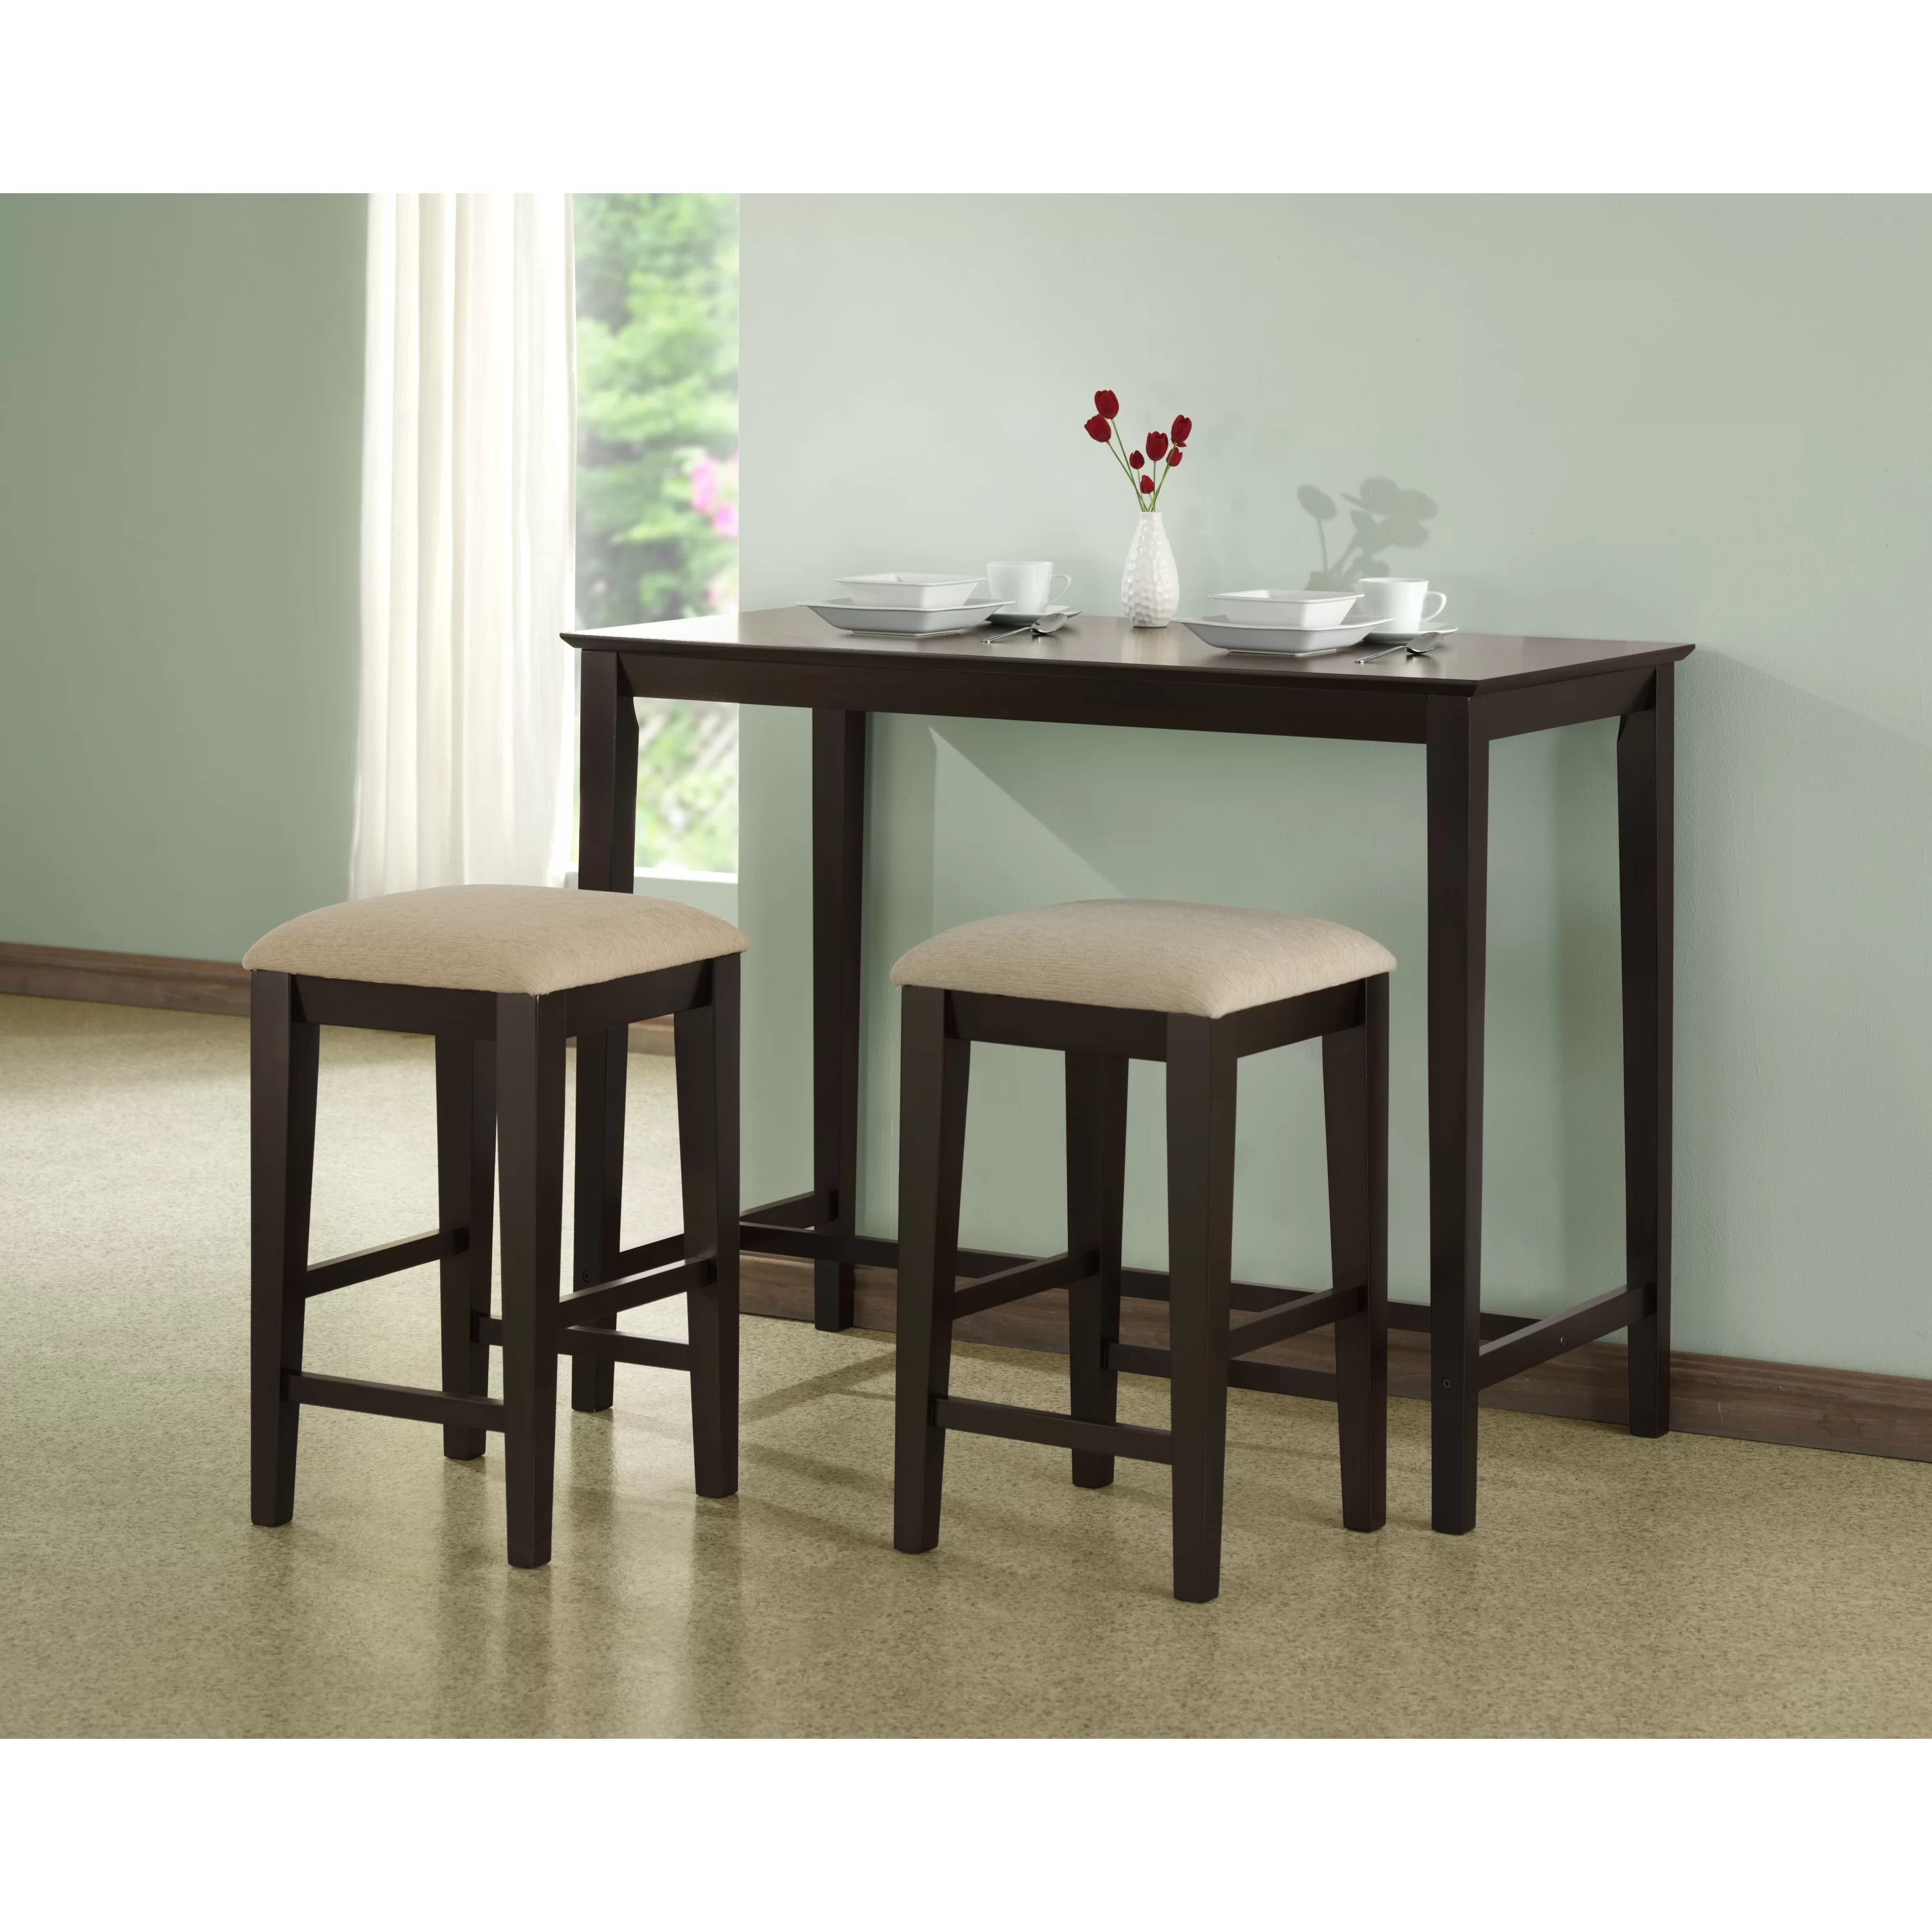 Monarch Specialties Inc Counter Height Kitchen Table MNQ counter height kitchen tables Monarch Specialties Inc Counter Height Kitchen Table